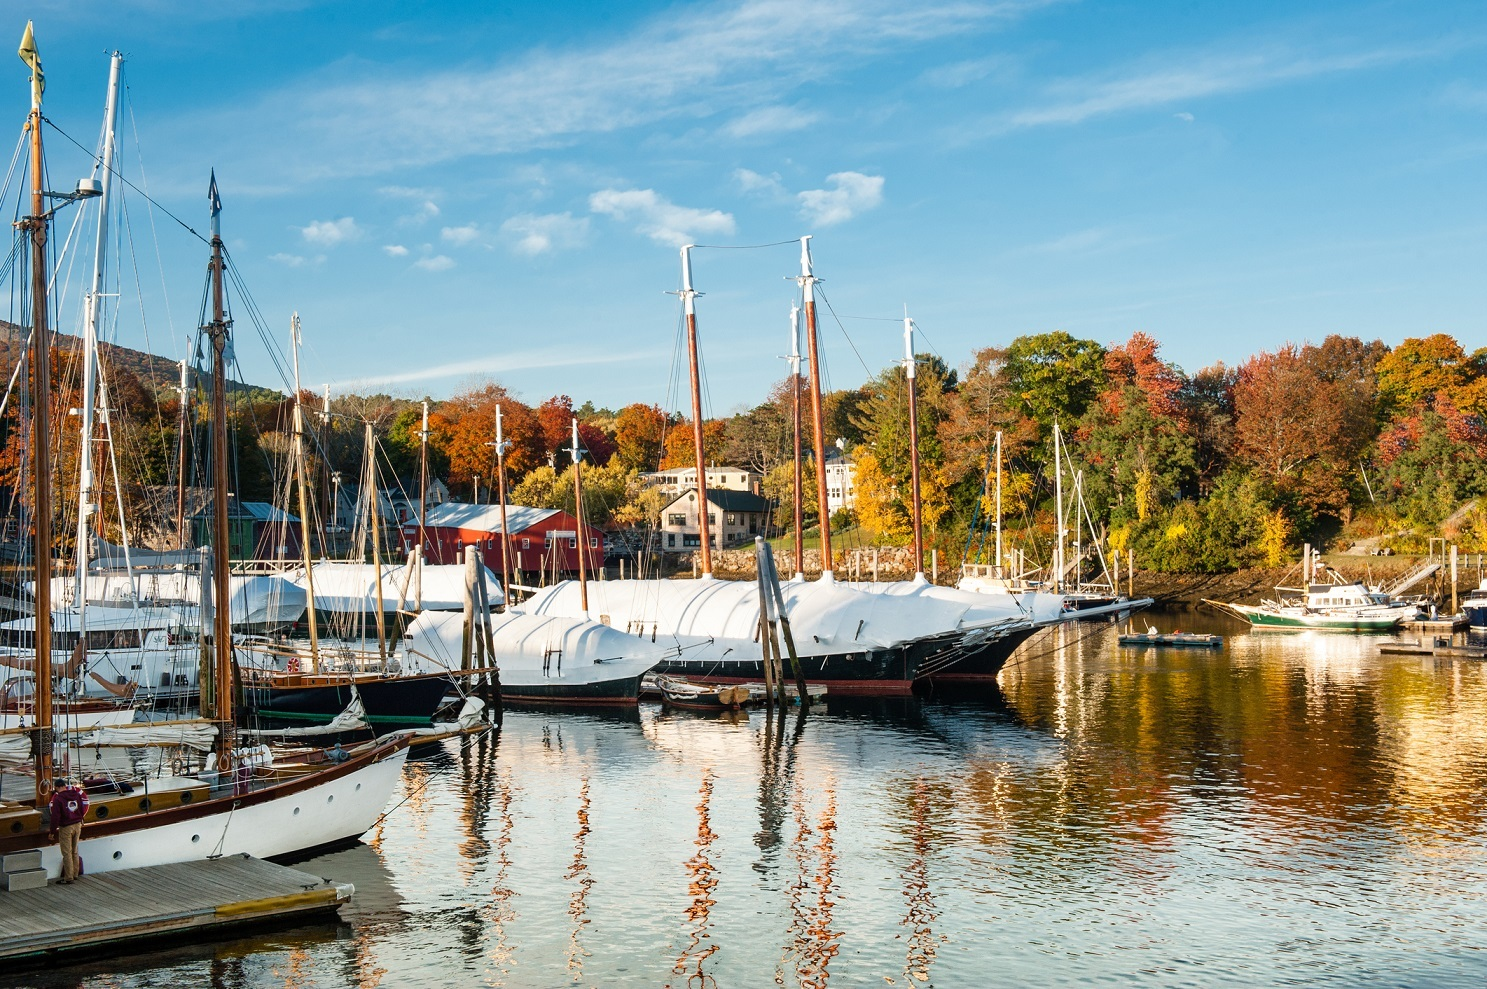 Camden, Maine harbor with bright fall foliage in autumn